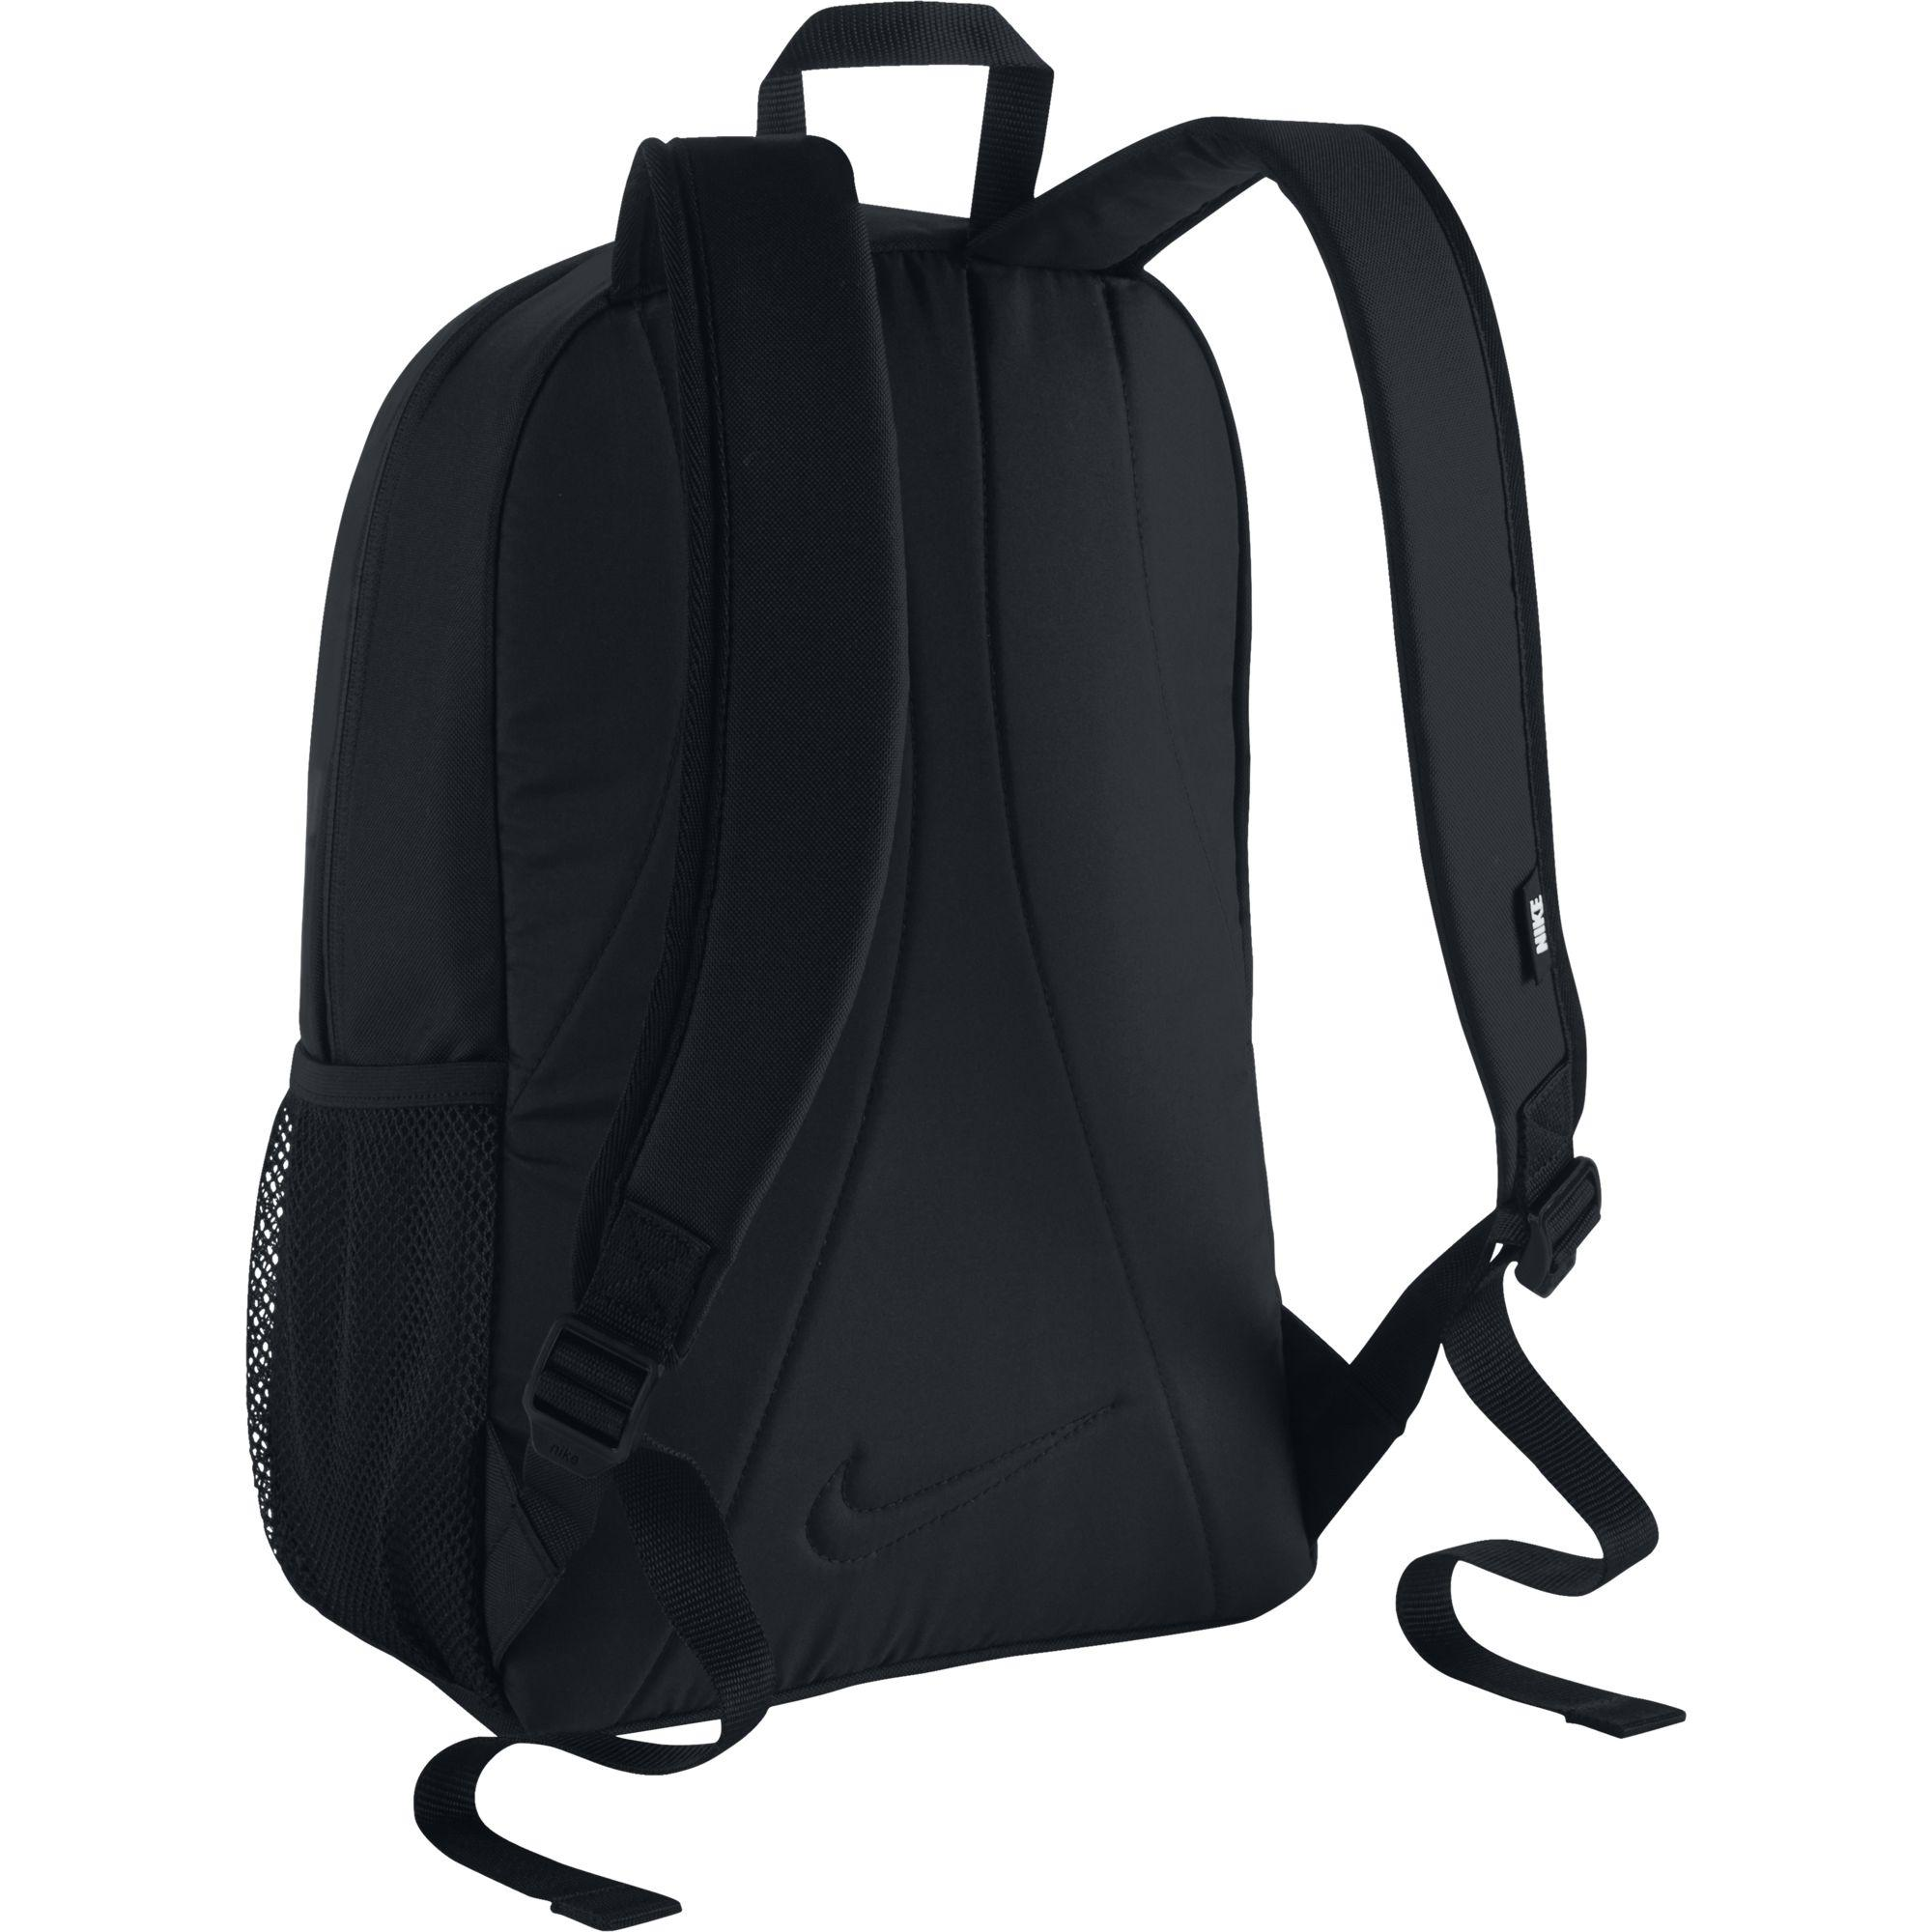 Nike Classic Sand Backpack - Black - Tennisnuts.com 07fe7643568cd